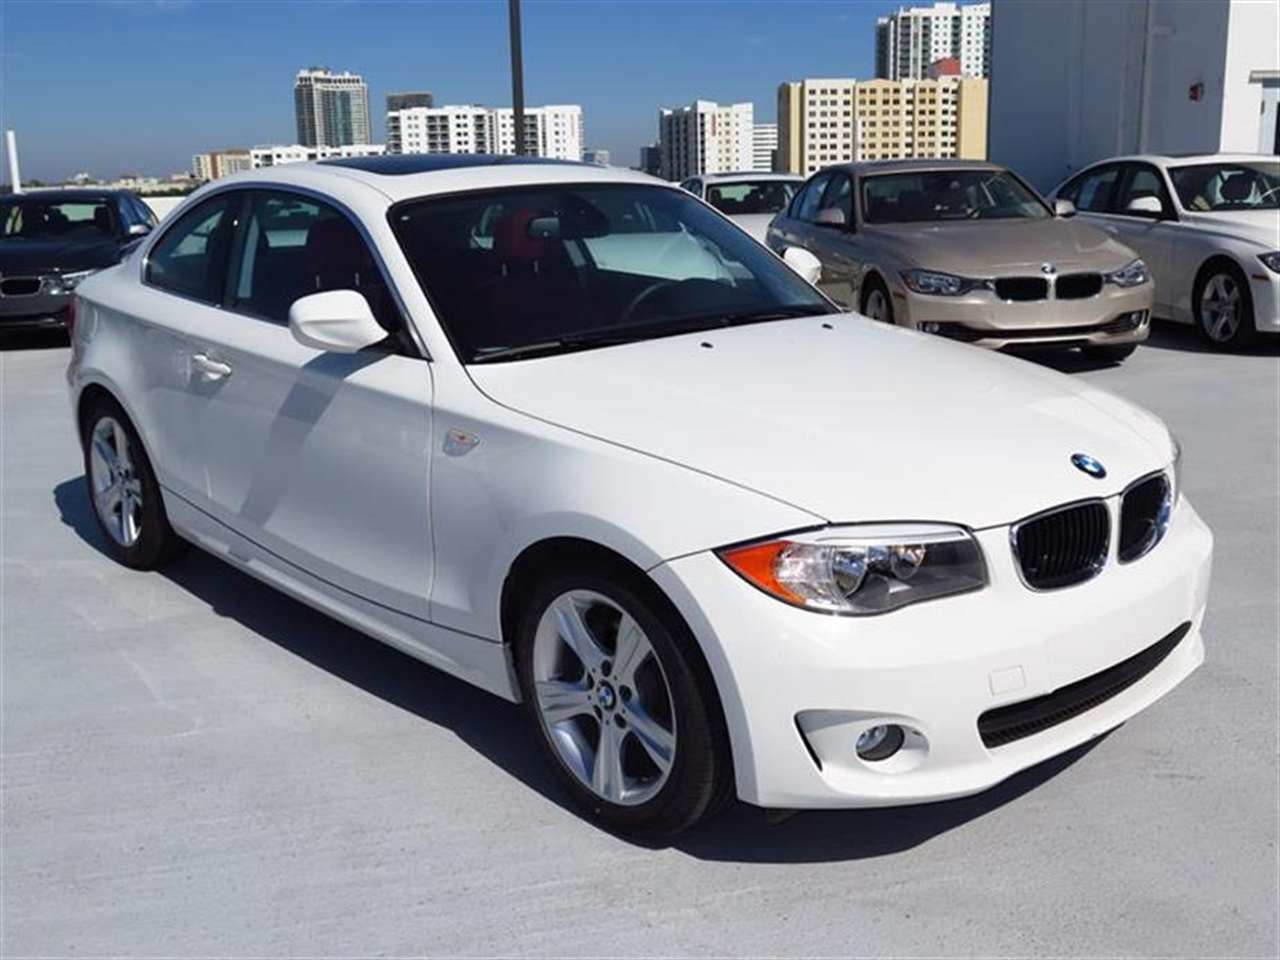 2012 BMW 1 SERIES 2dr Cpe 128i 13230 miles 3-spoke leather-wrapped multi-function sport steering